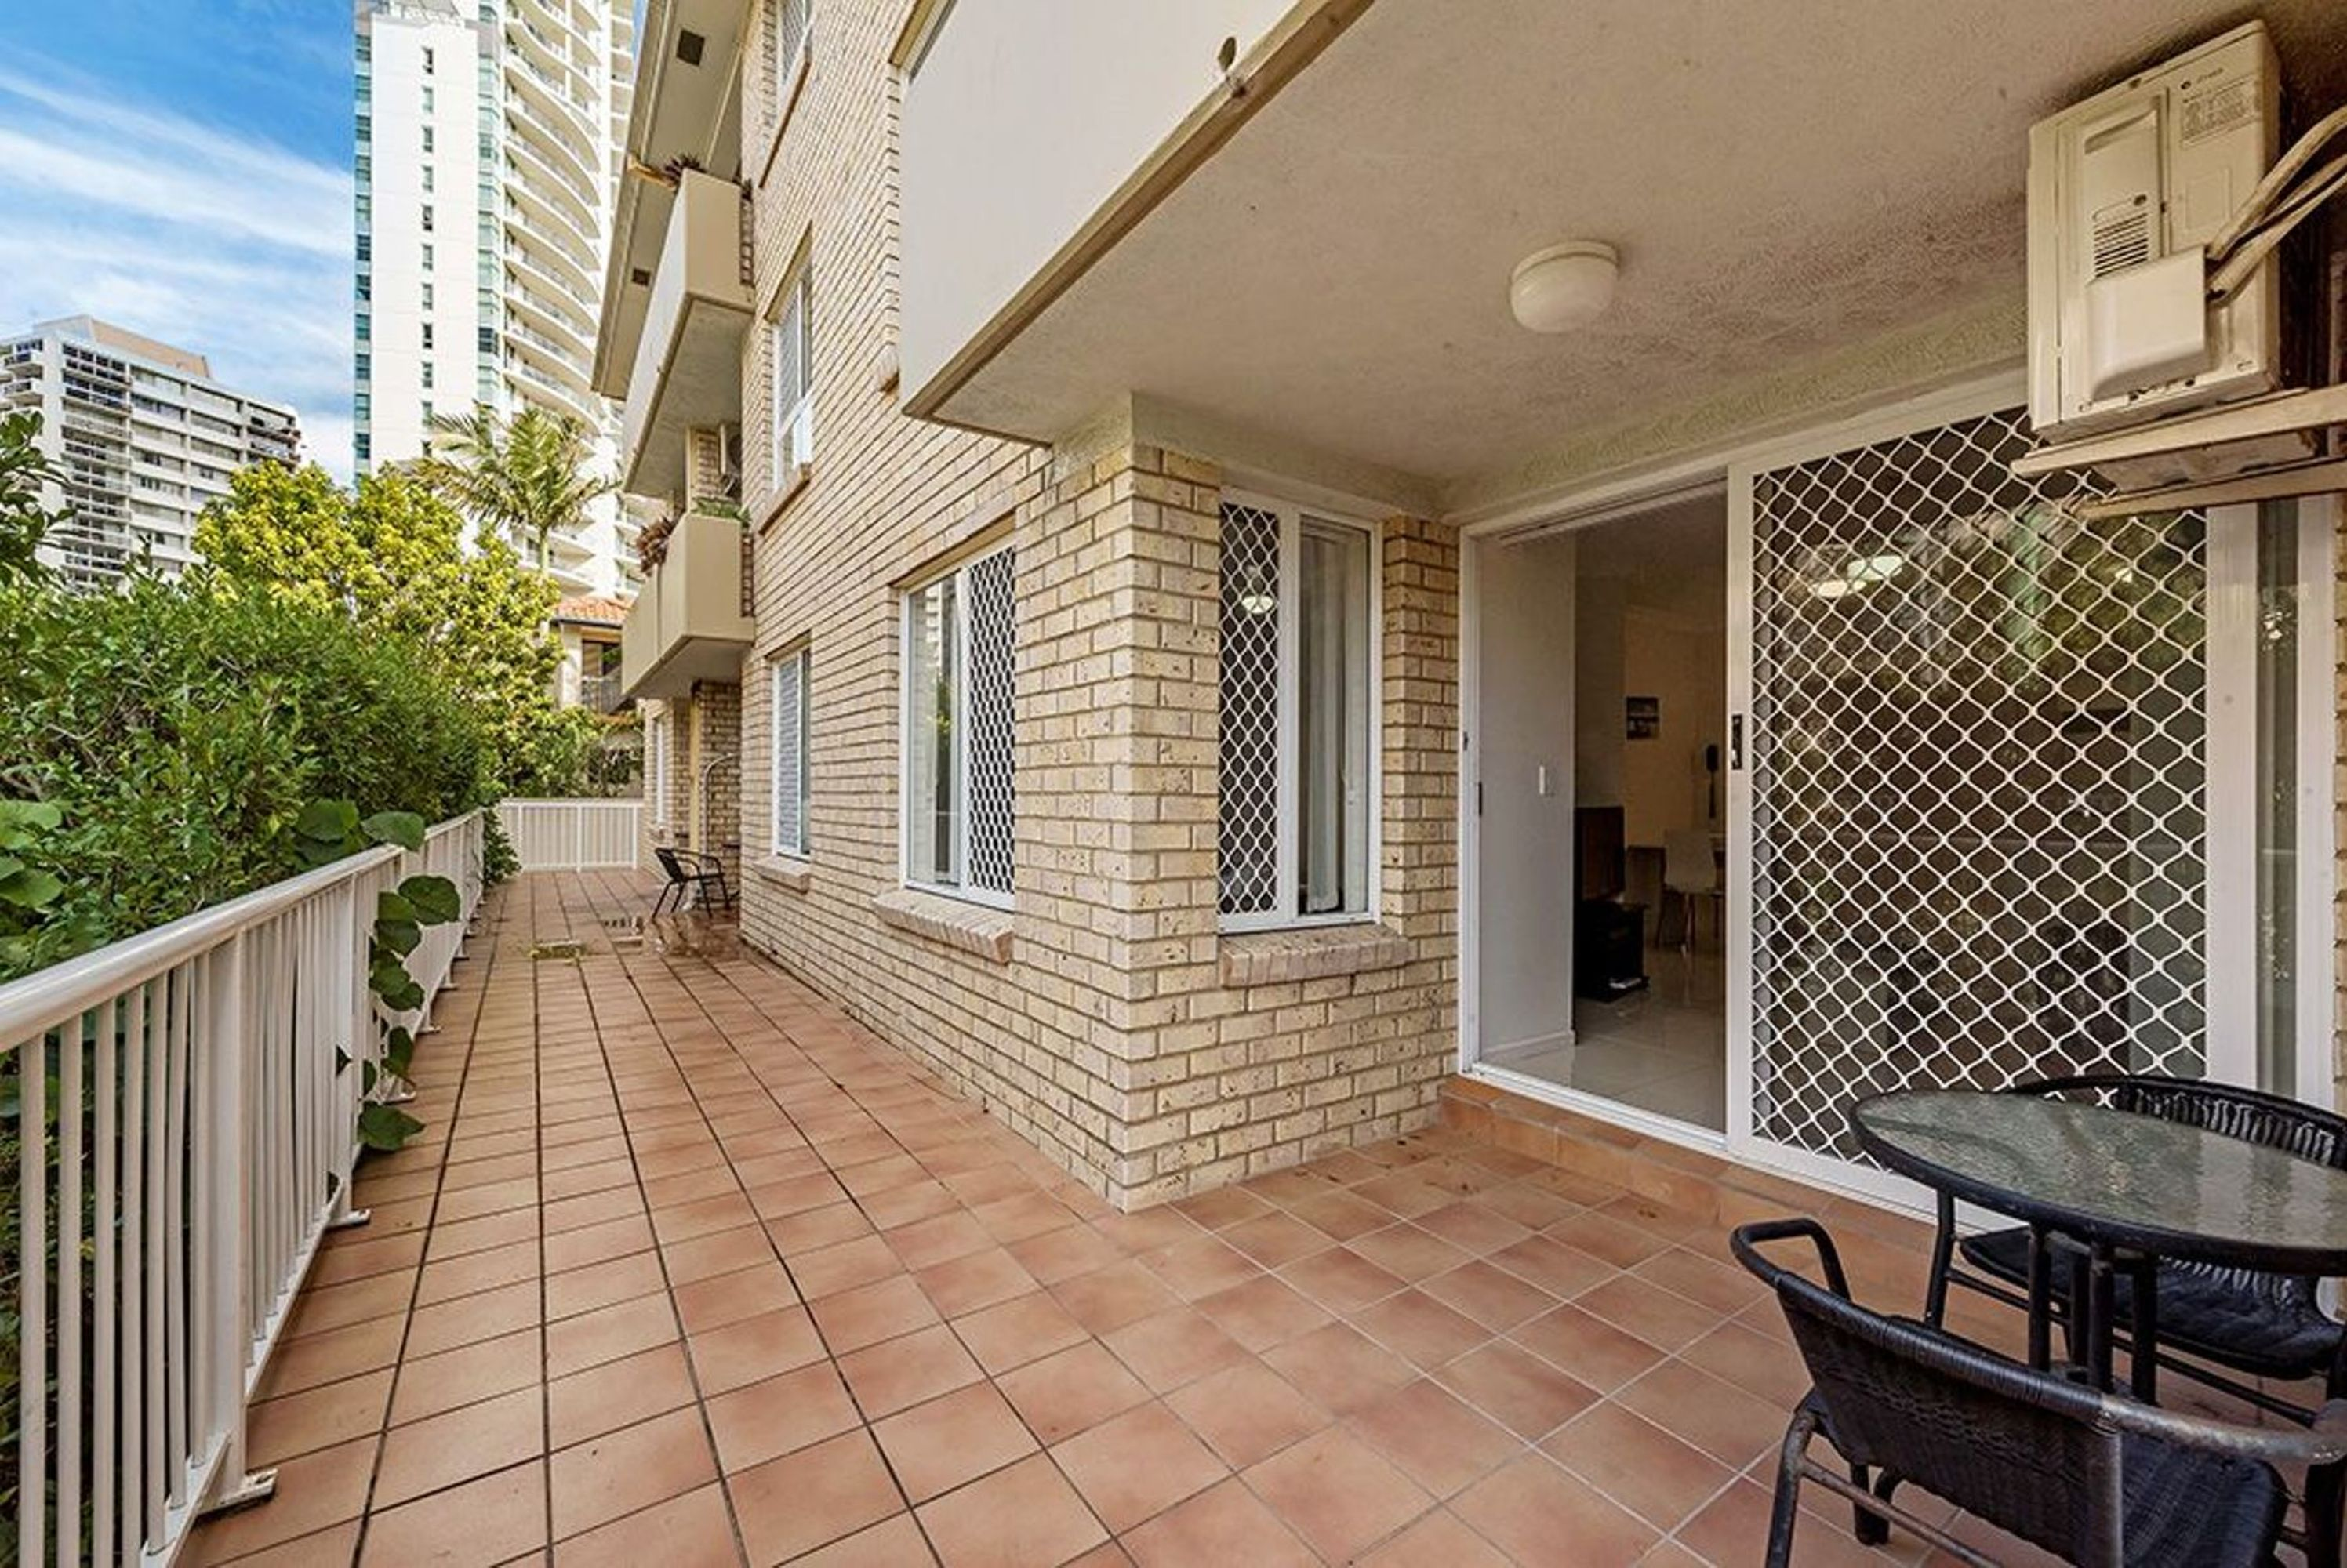 8/43 Cypress Ave, Surfers Paradise, QLD 4217